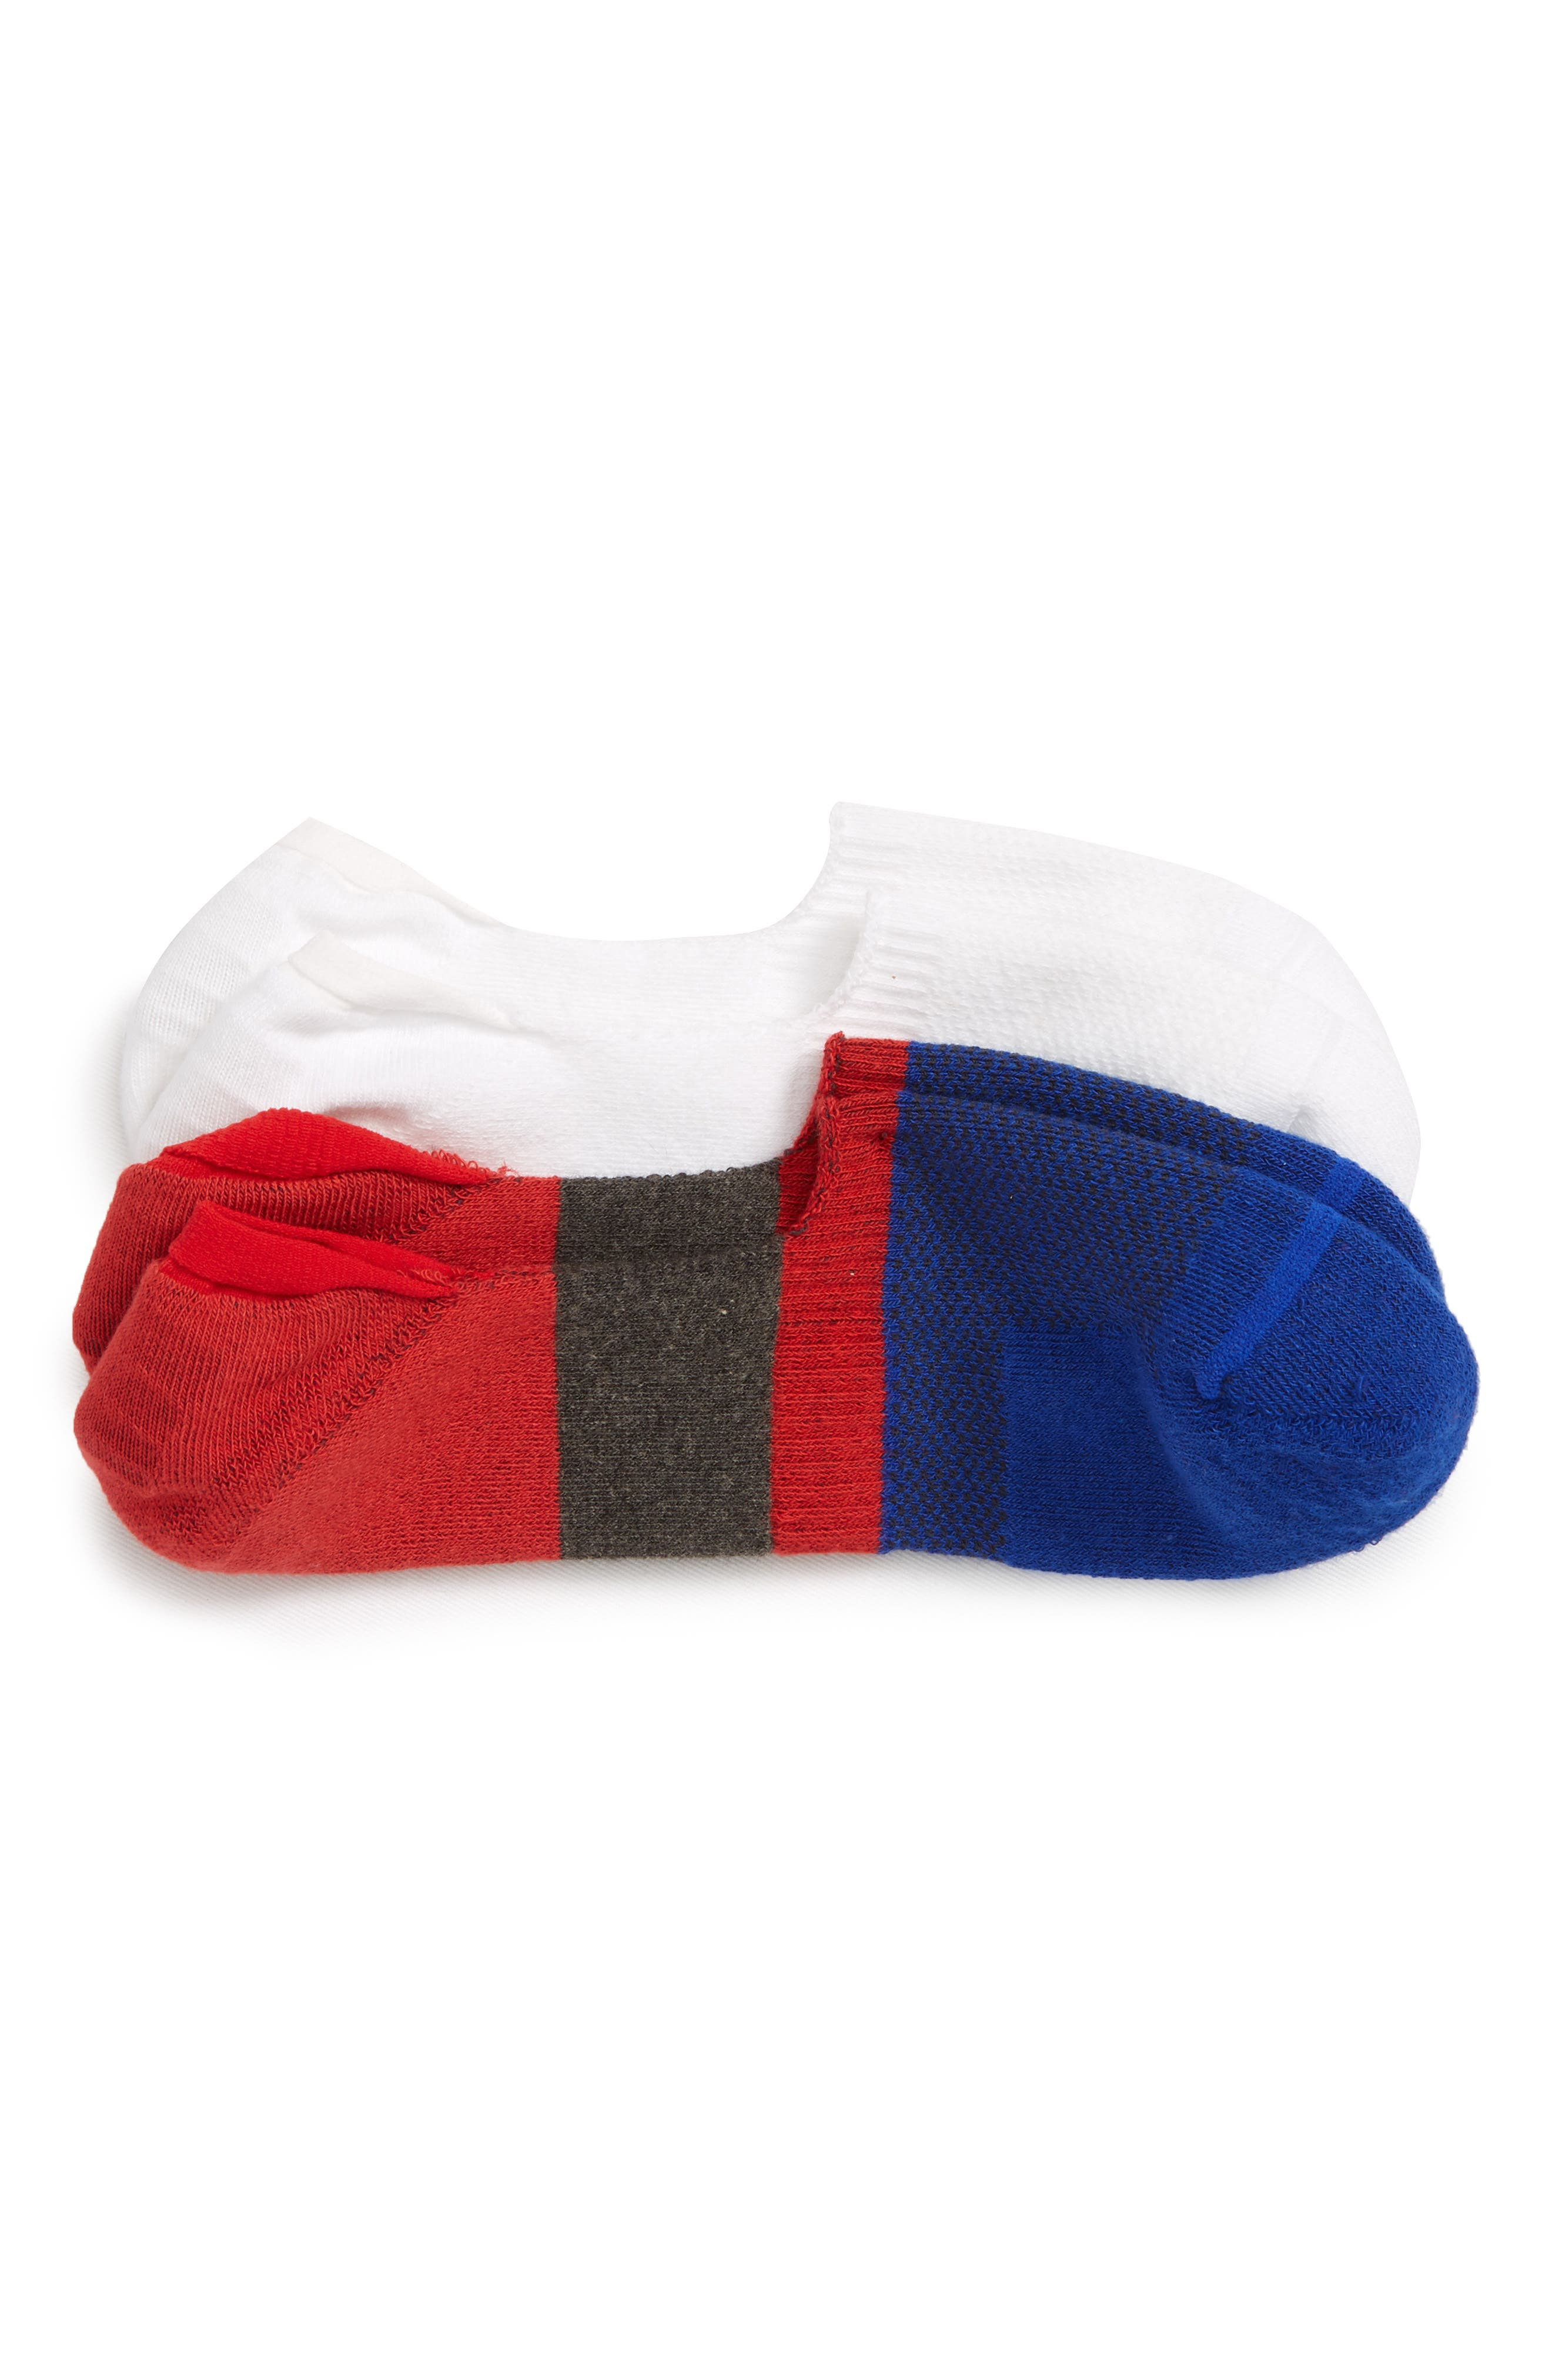 Nordstrom Mens Shop 2-Pack Performance Liner Socks,                             Main thumbnail 1, color,                             RED/ WHITE/ BLUE